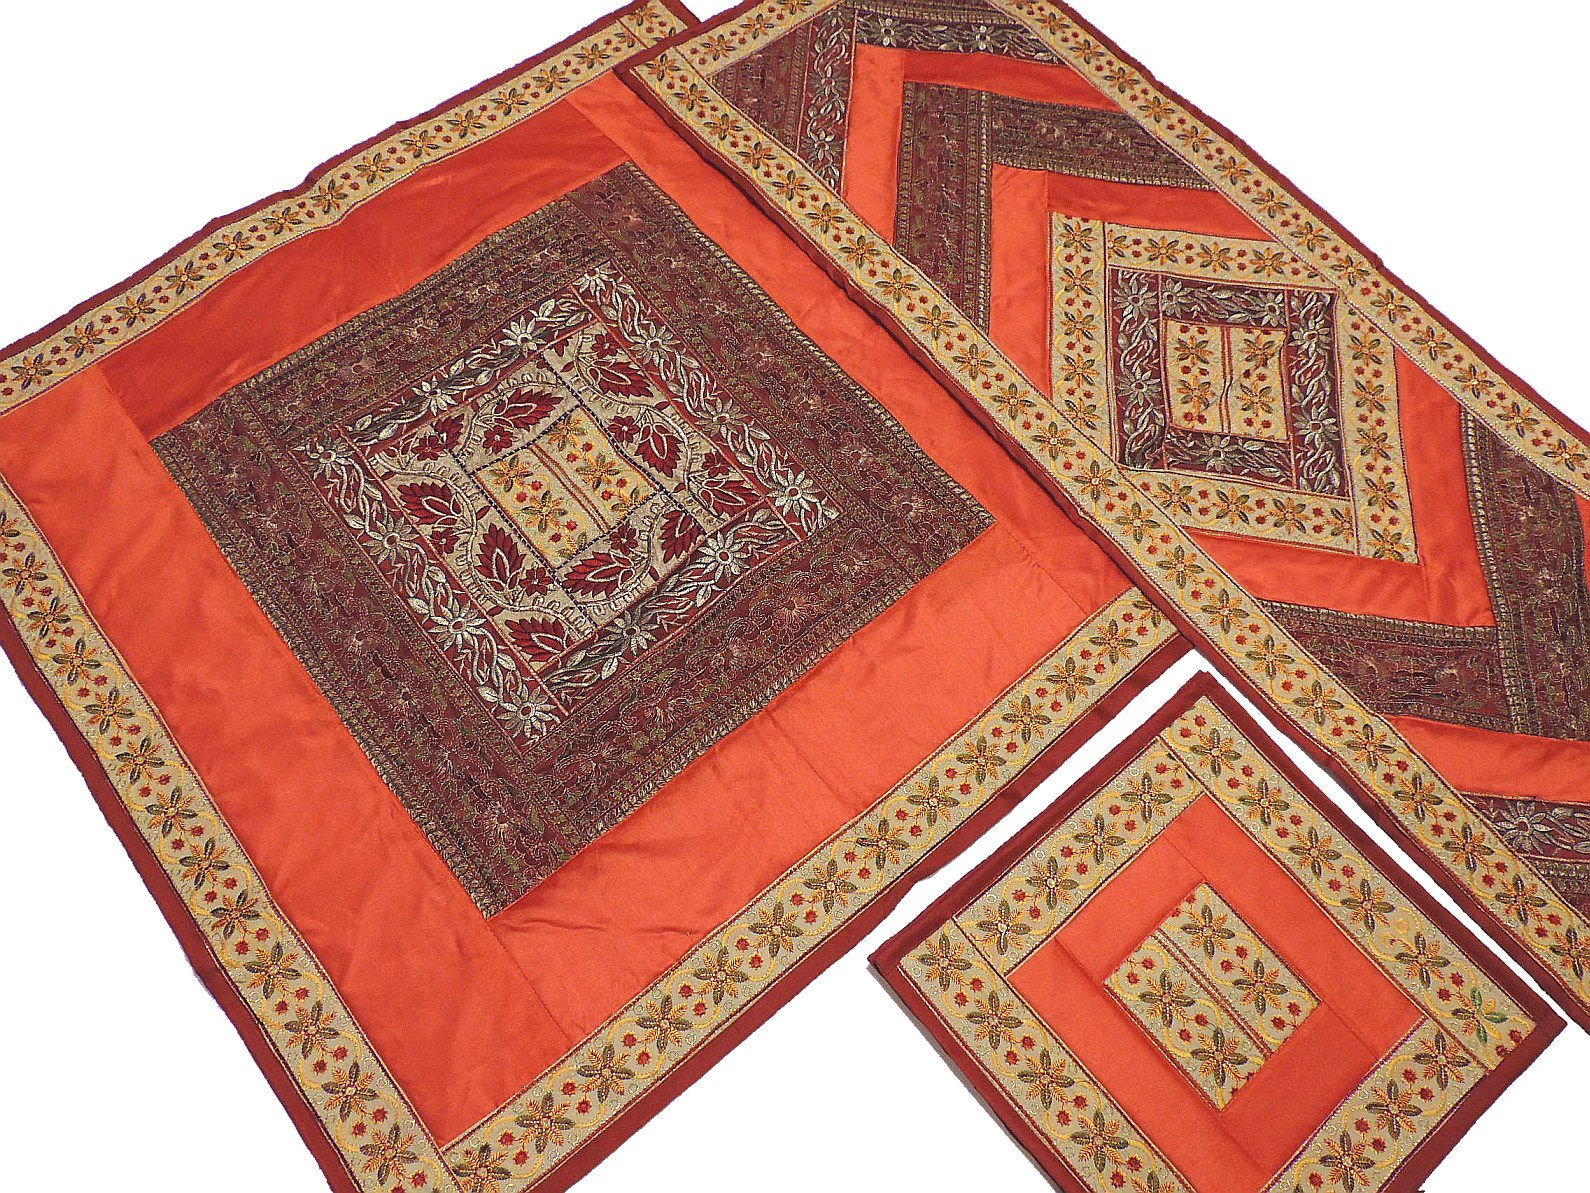 Rust Orange and Maroon Embroidered Classic Tablecloth, Table Runner and 4 Placemats Set in Dupioni Art Silk from India ~ Tablecloth - 40 Inch, Runner - 60 Inch x 20 Inch, Placemats - 16 Inch